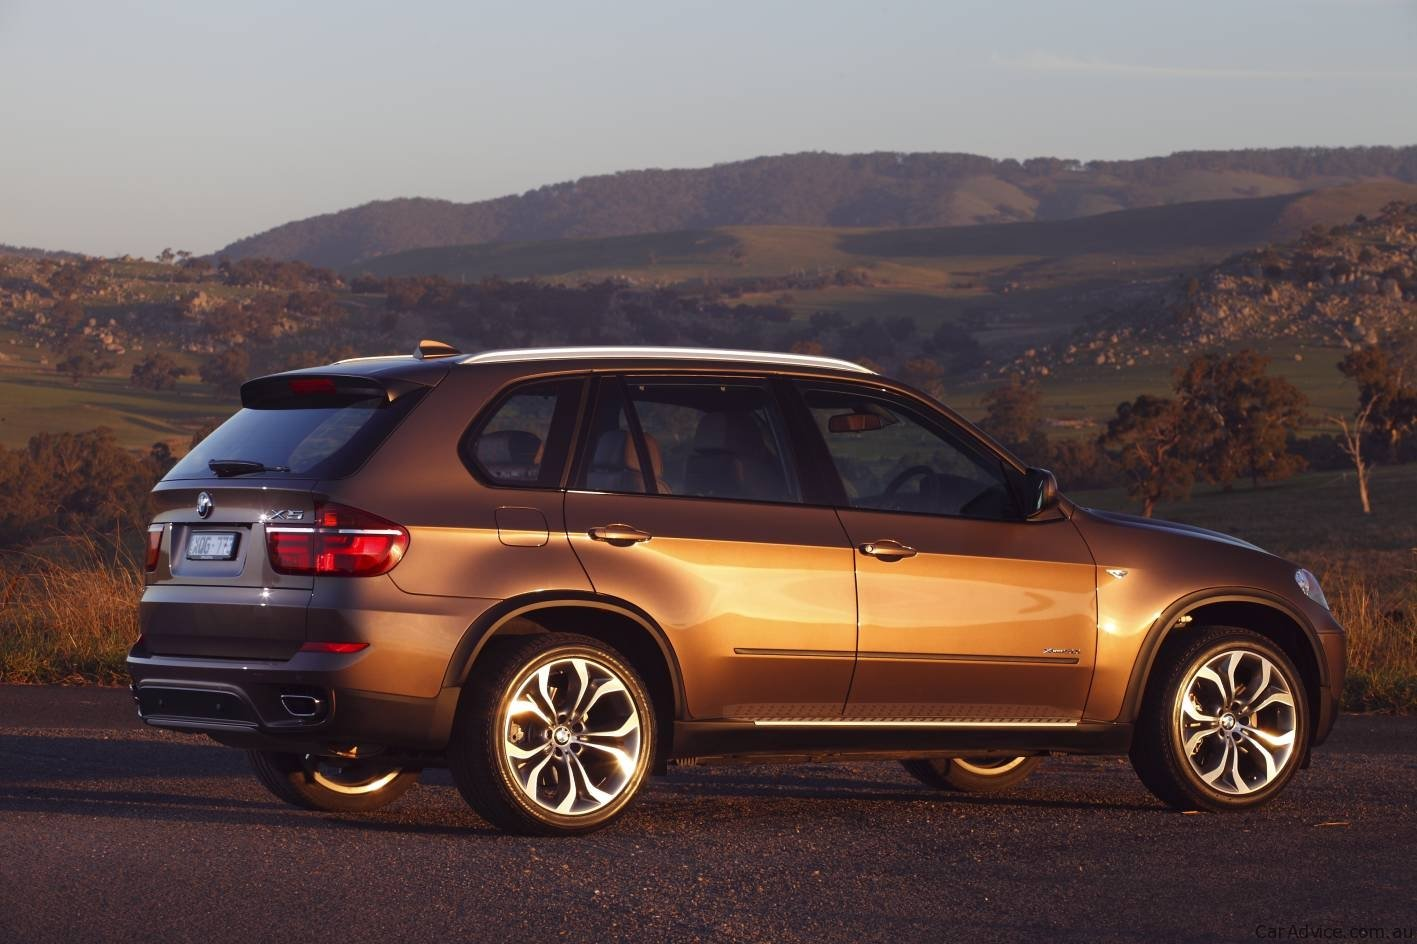 2010 bmw x5 suv update photos 1 of 34. Black Bedroom Furniture Sets. Home Design Ideas